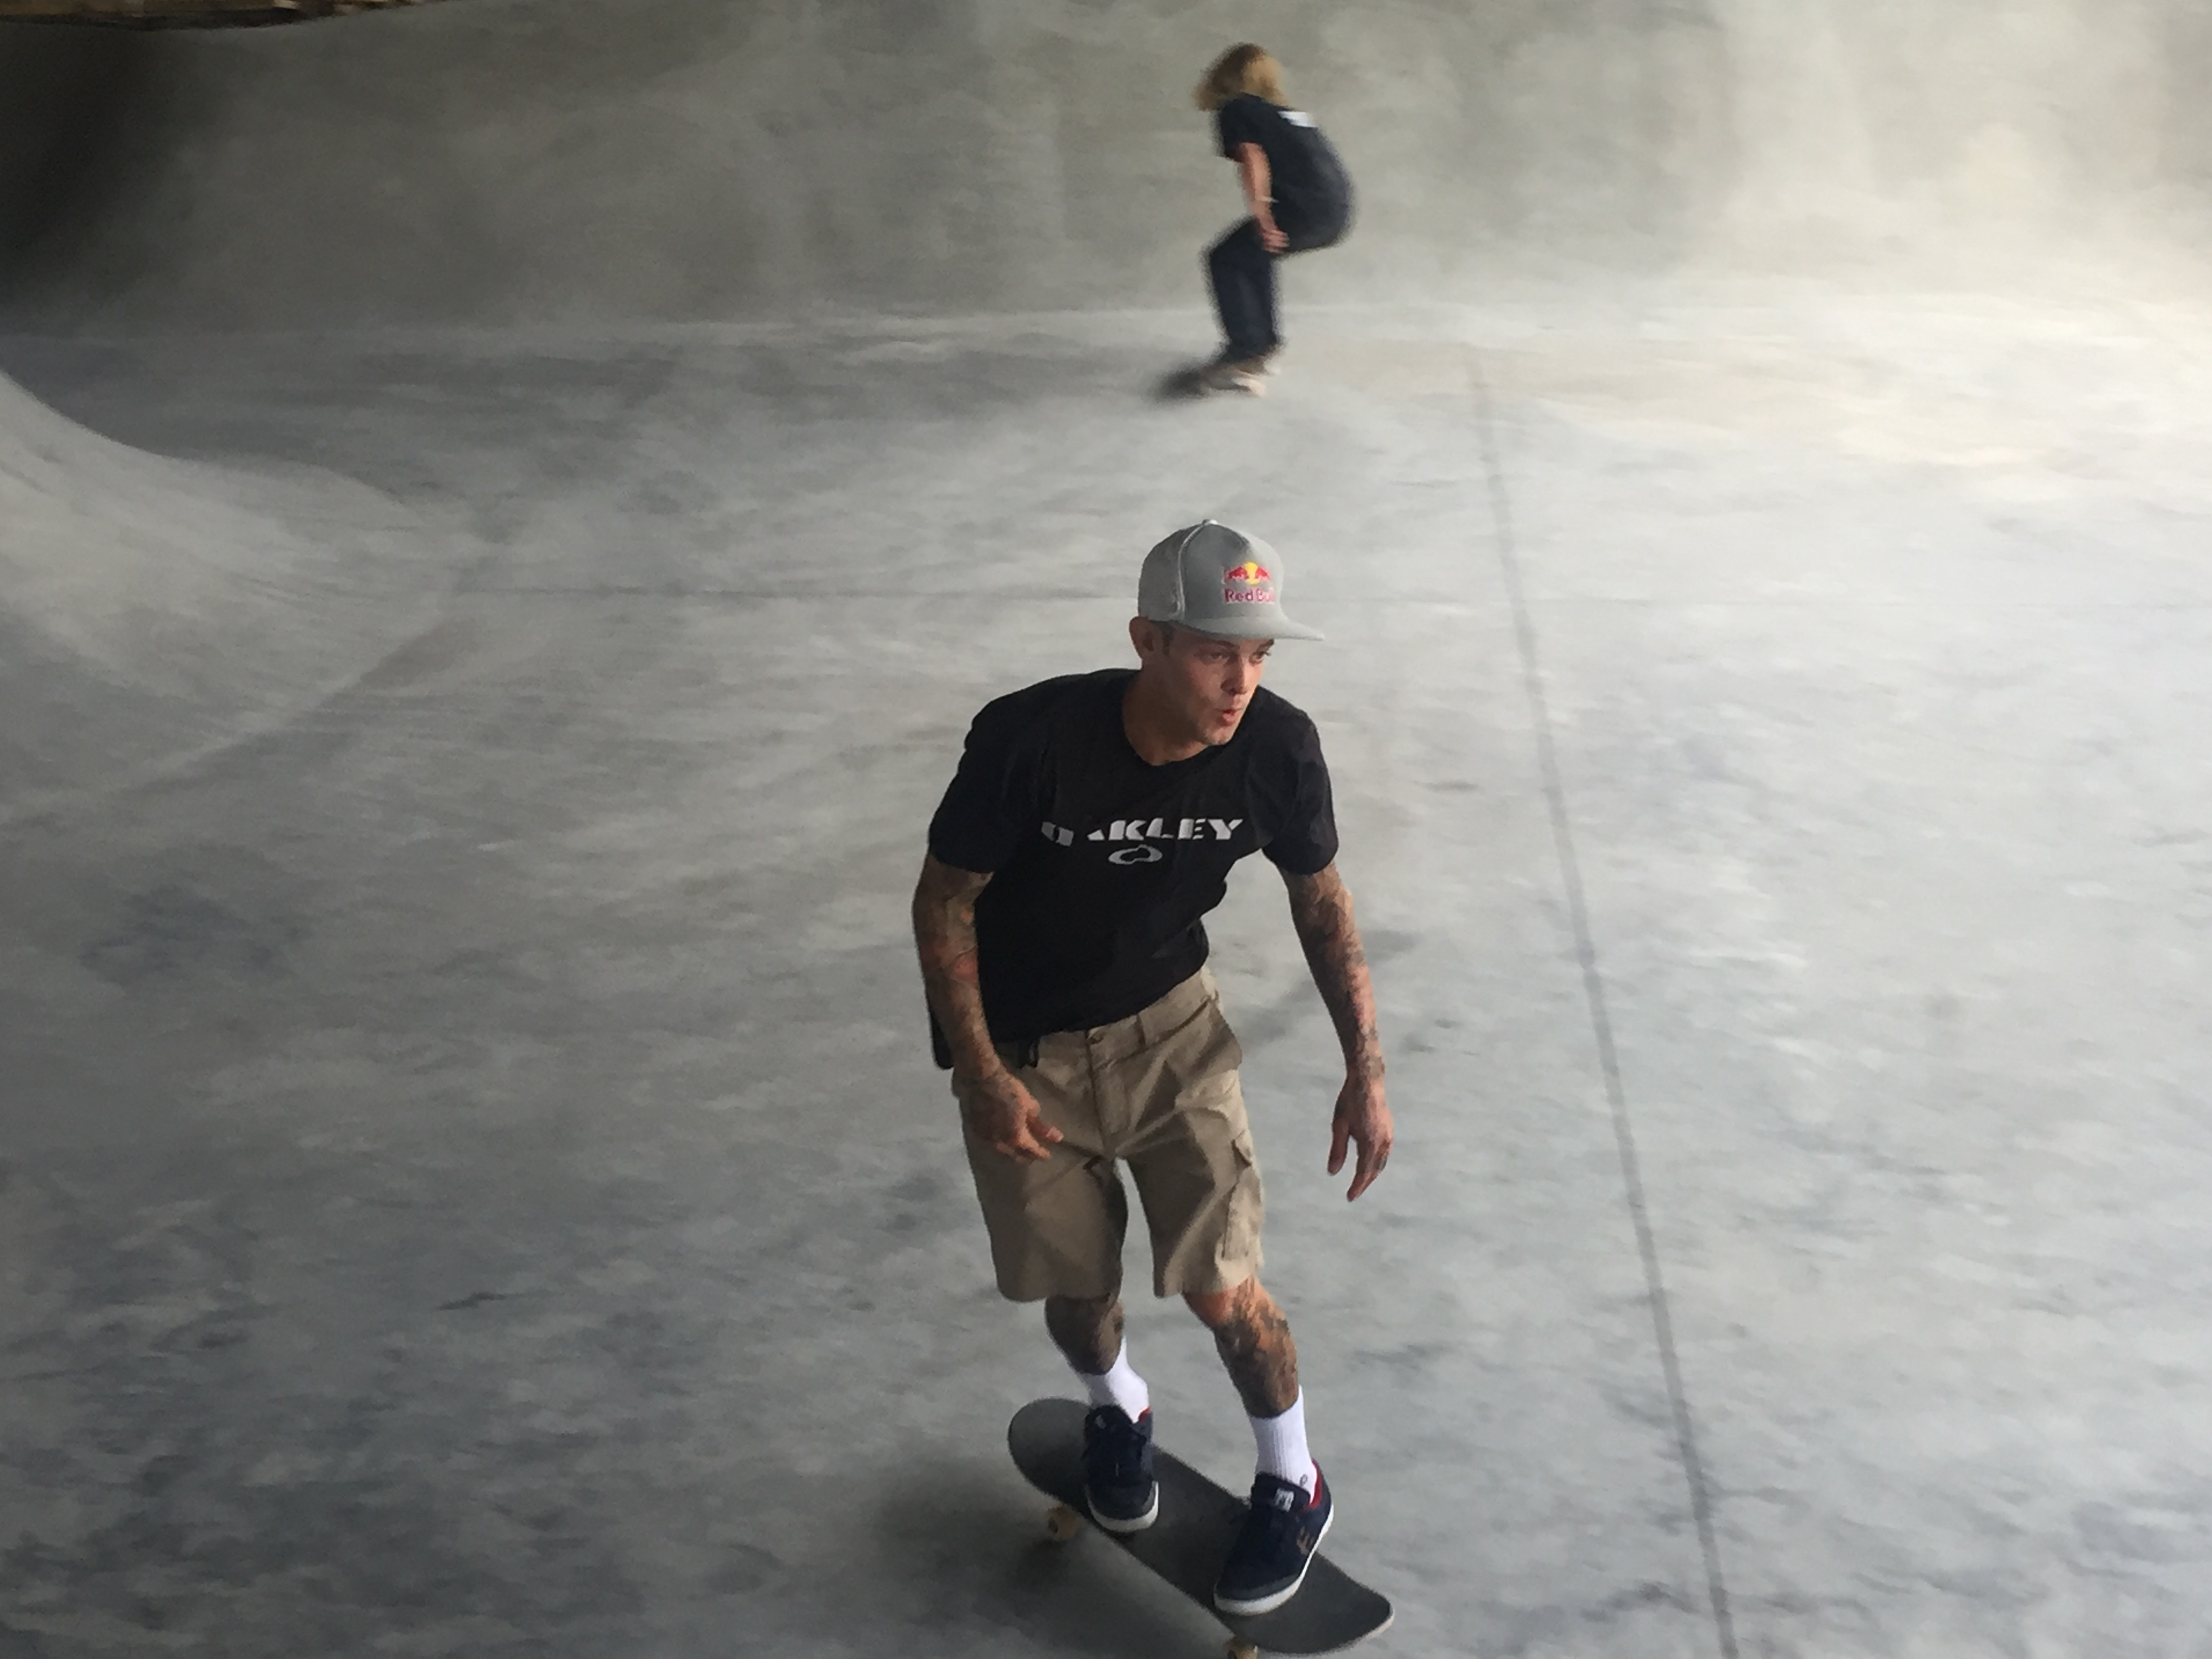 Rare legal skatepark expands